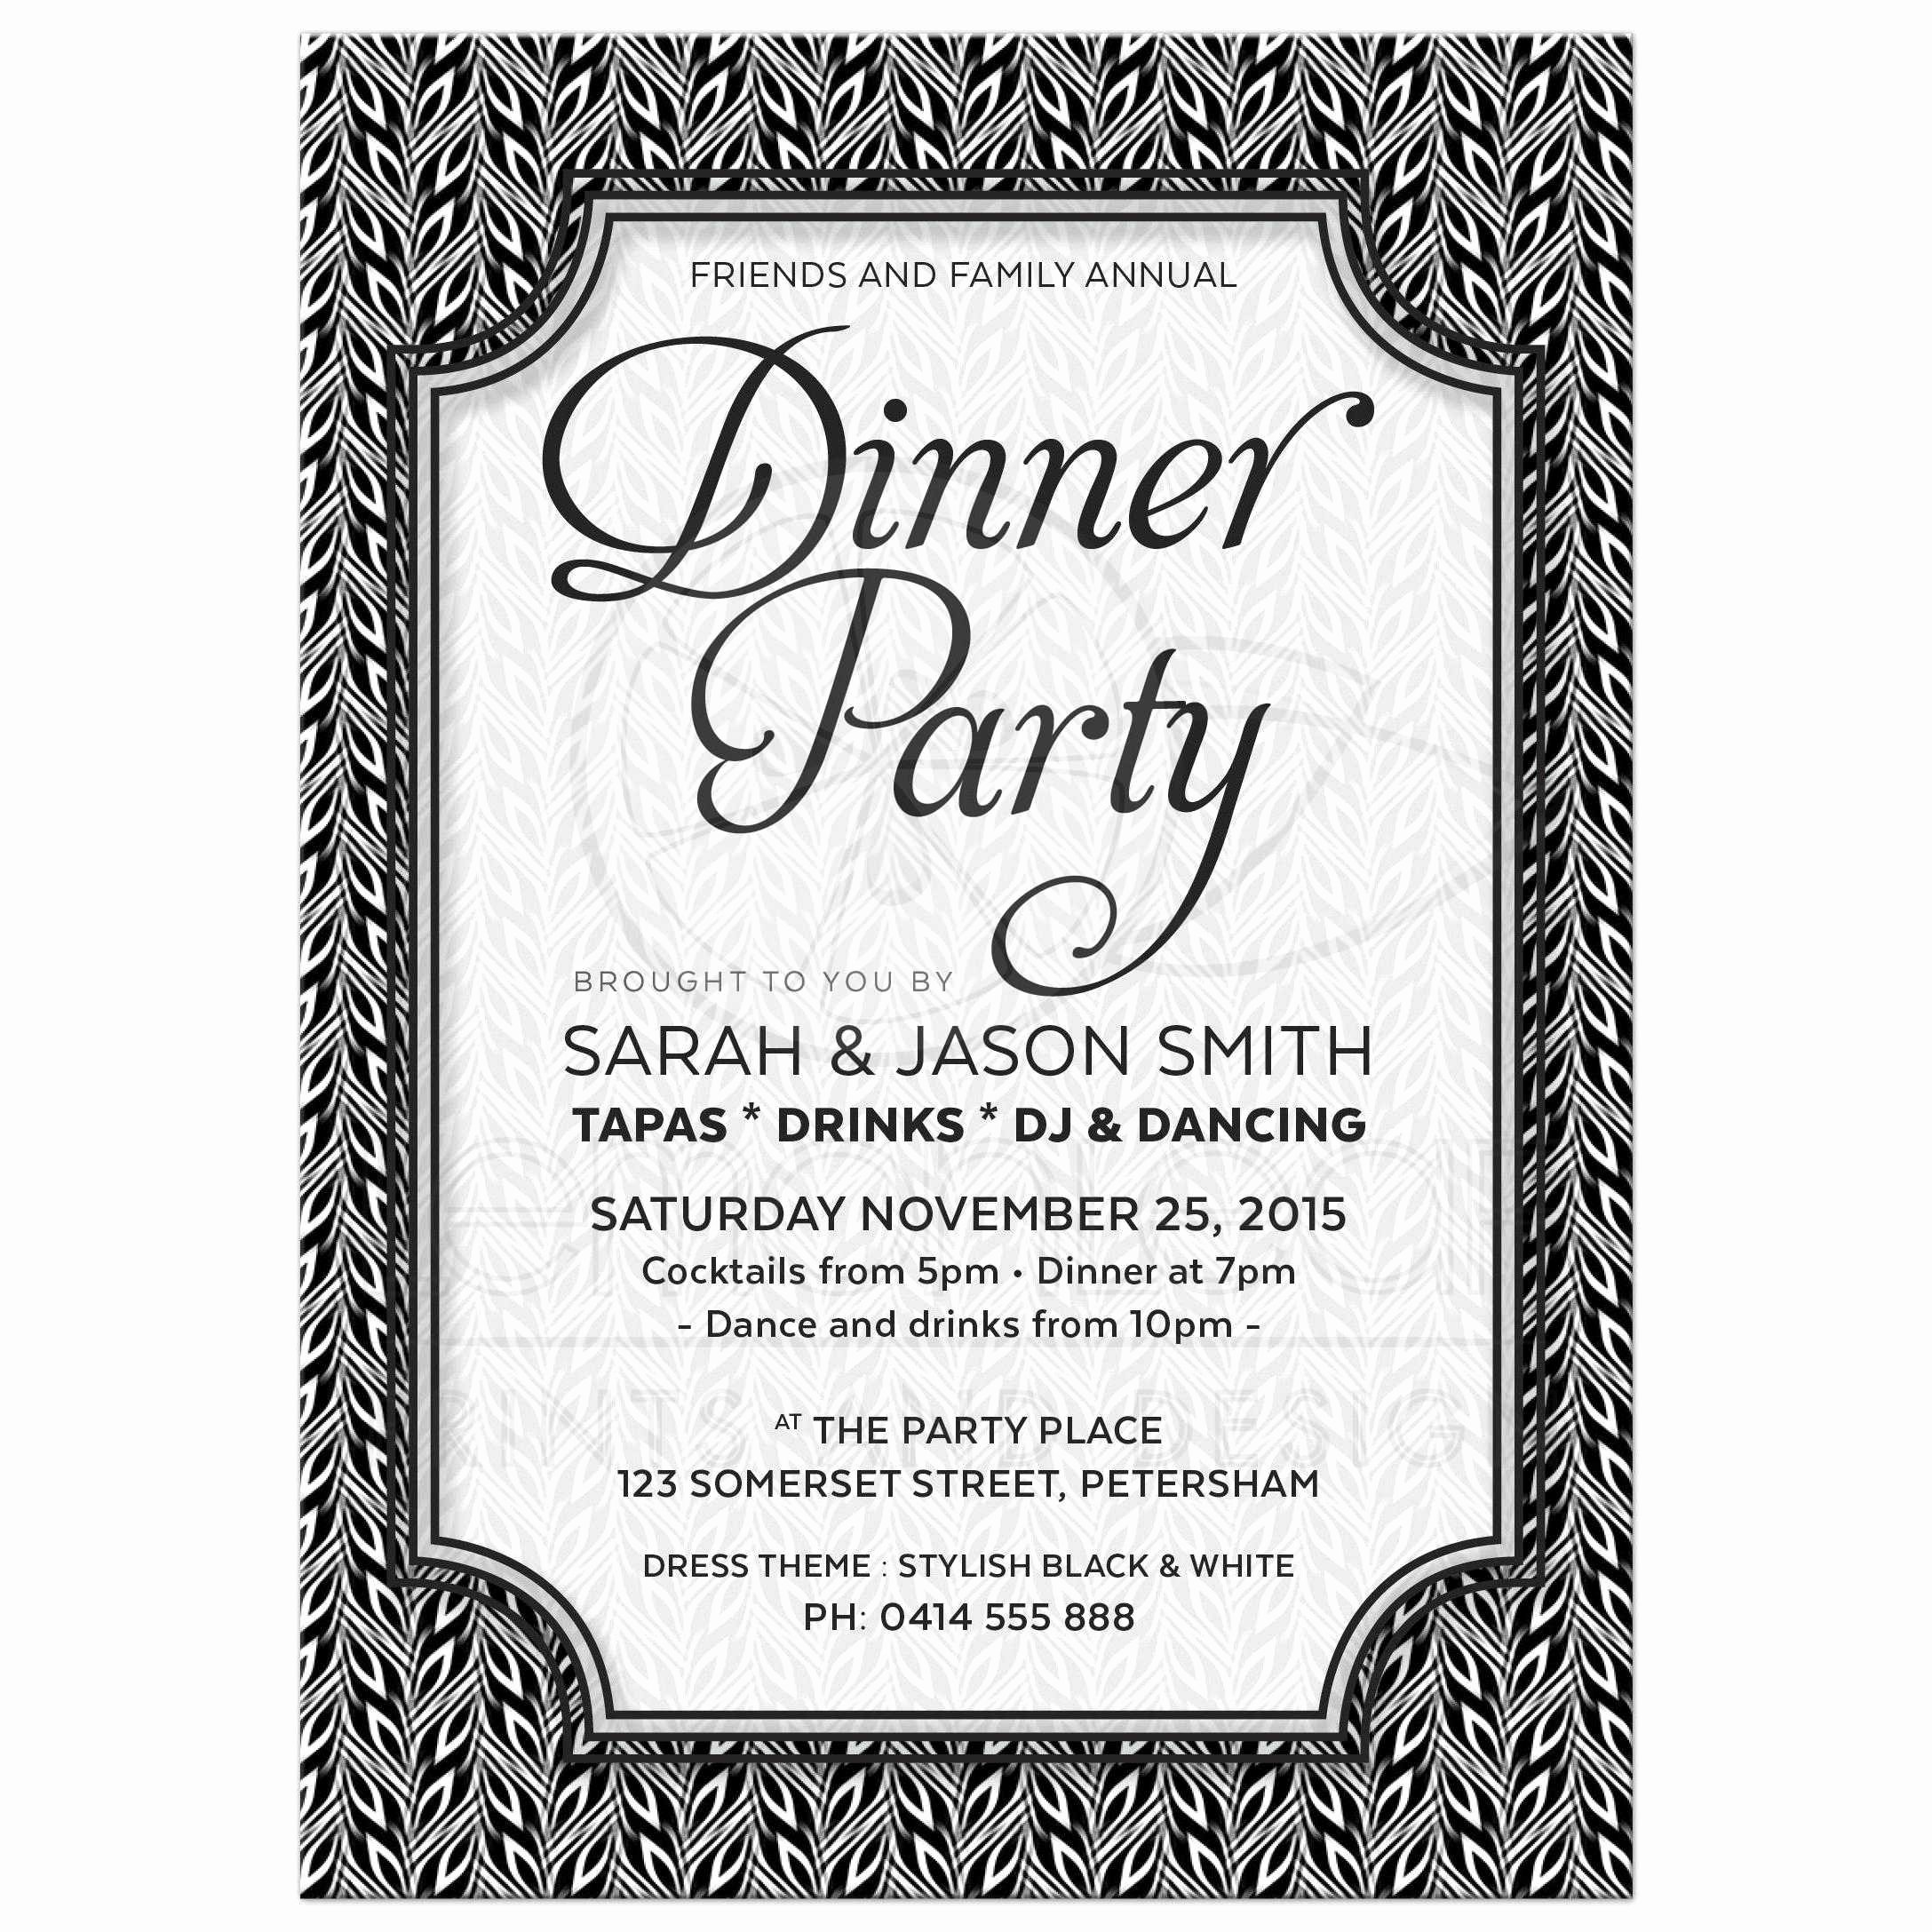 Invitation Message for Dinner New Black and White Dinner Party Invitation